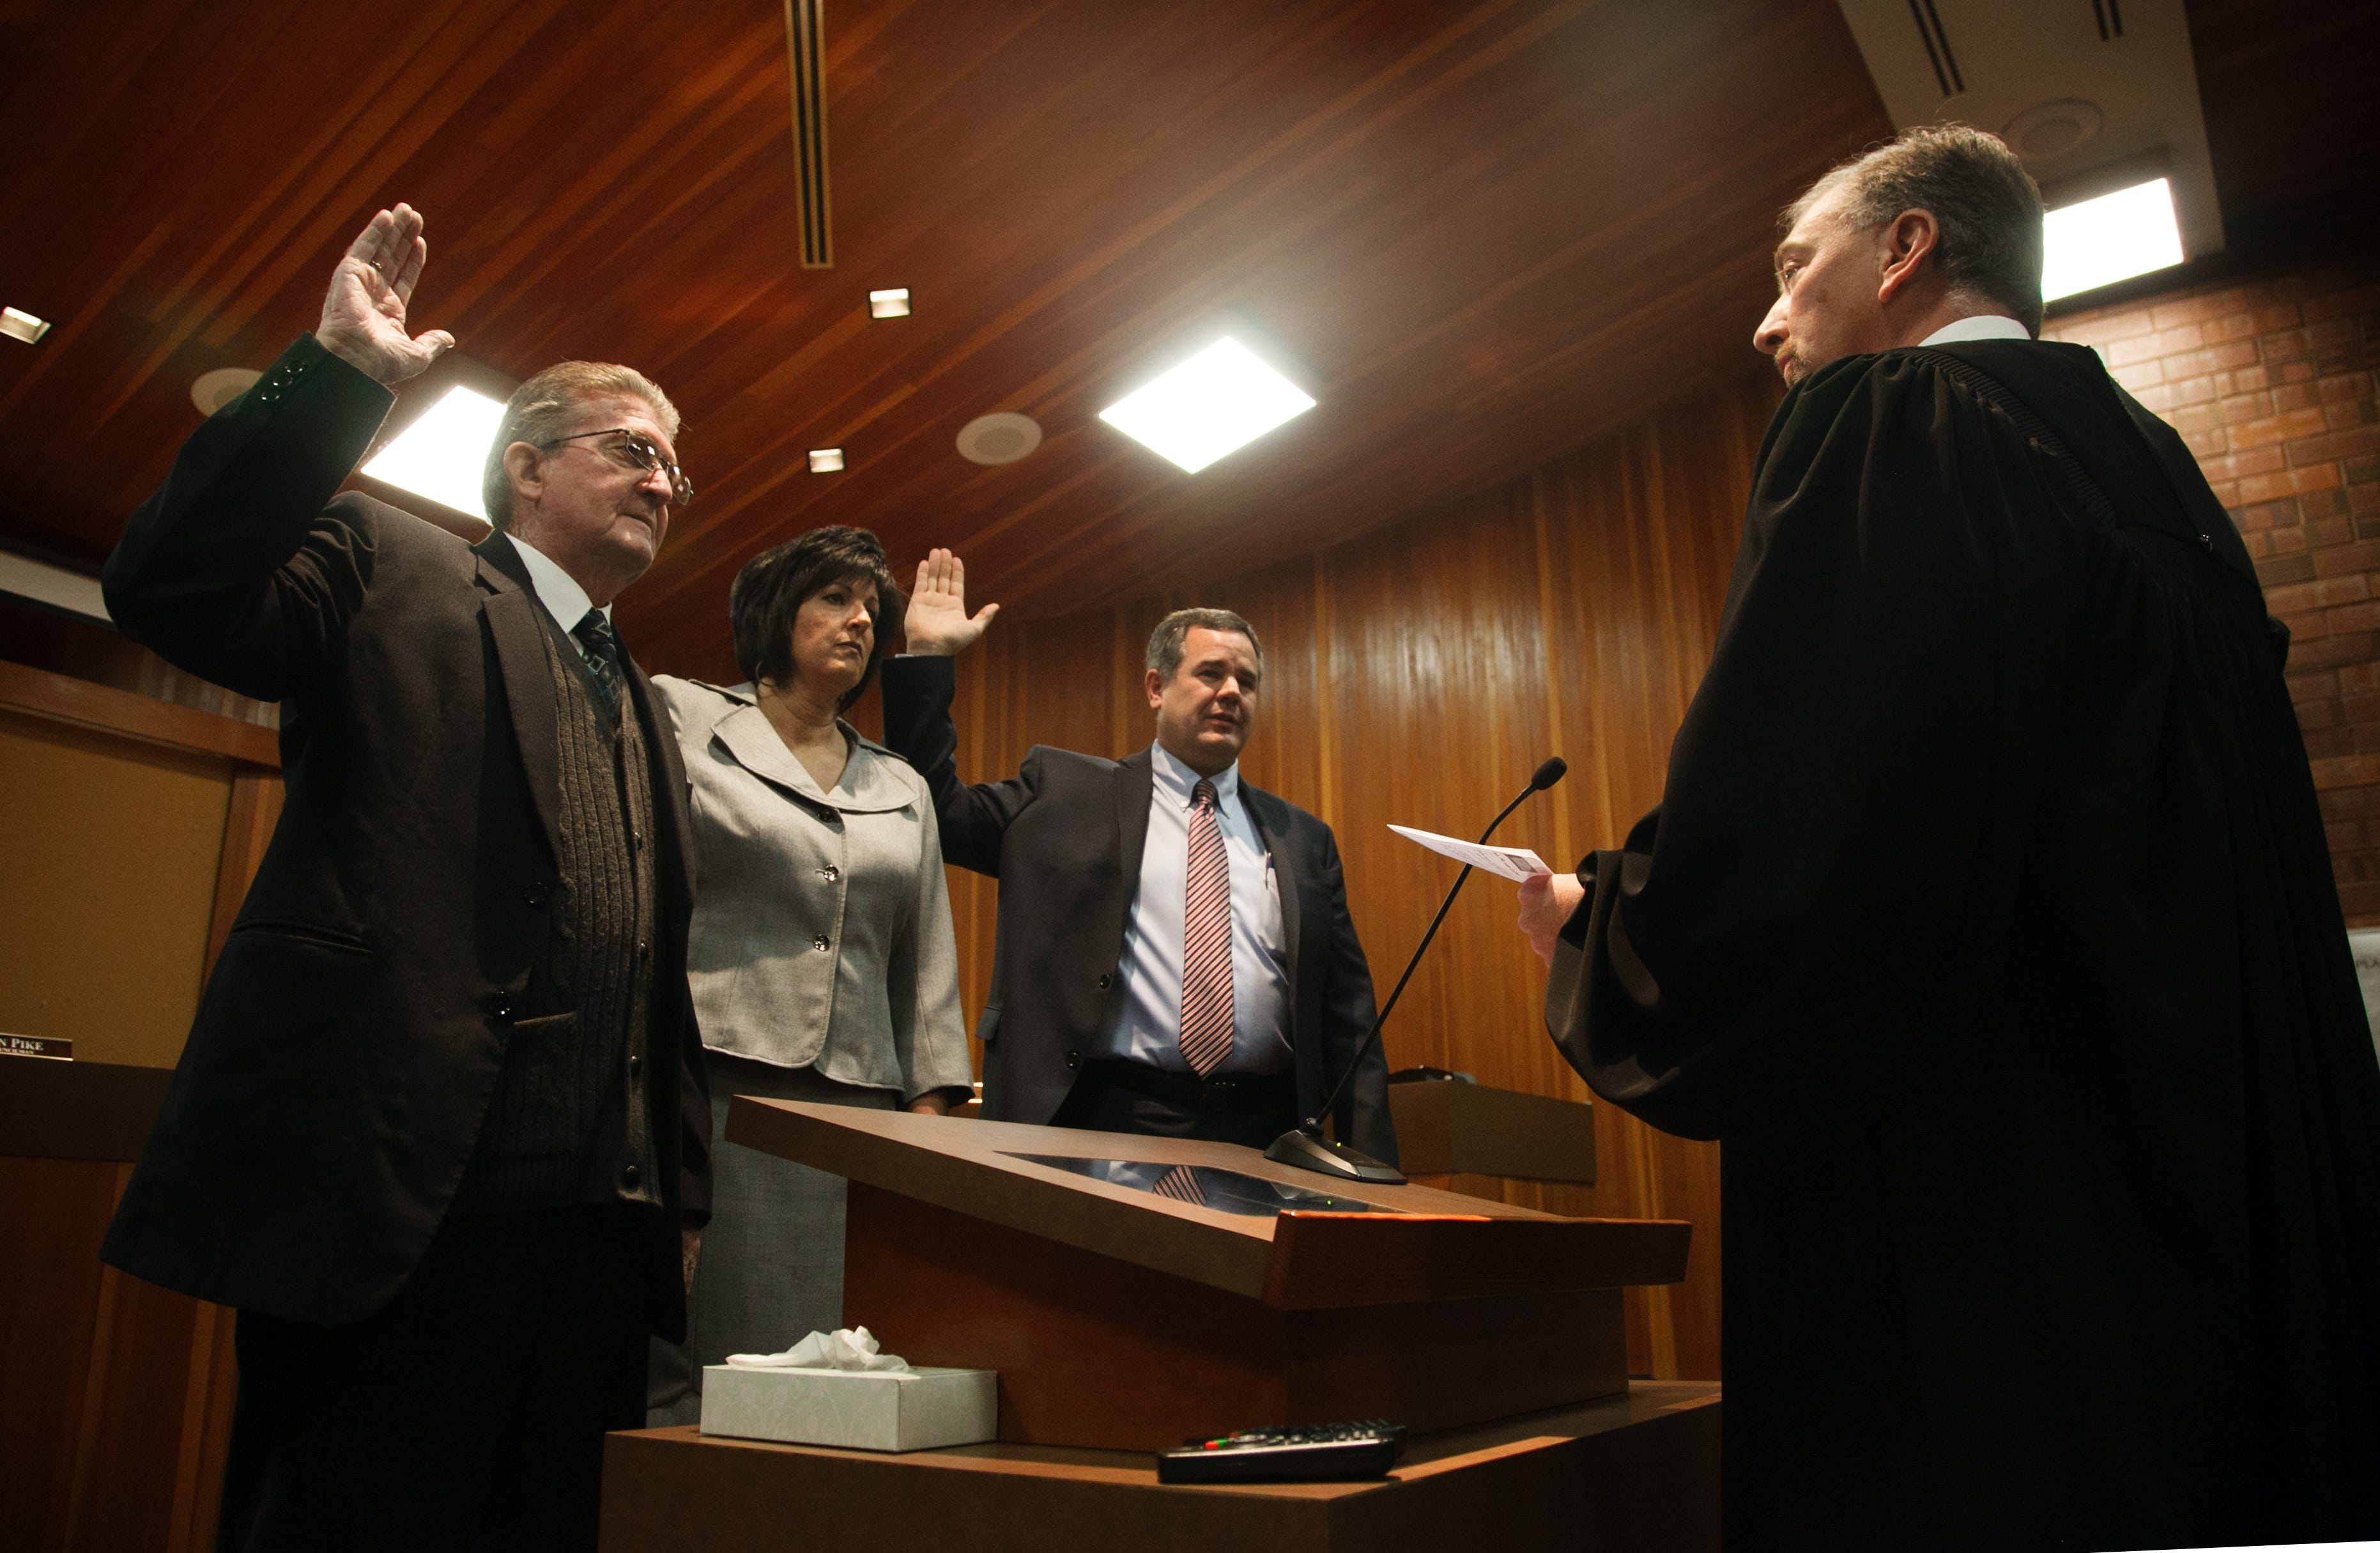 Election results final in St. George; Washington City to know Tuesday